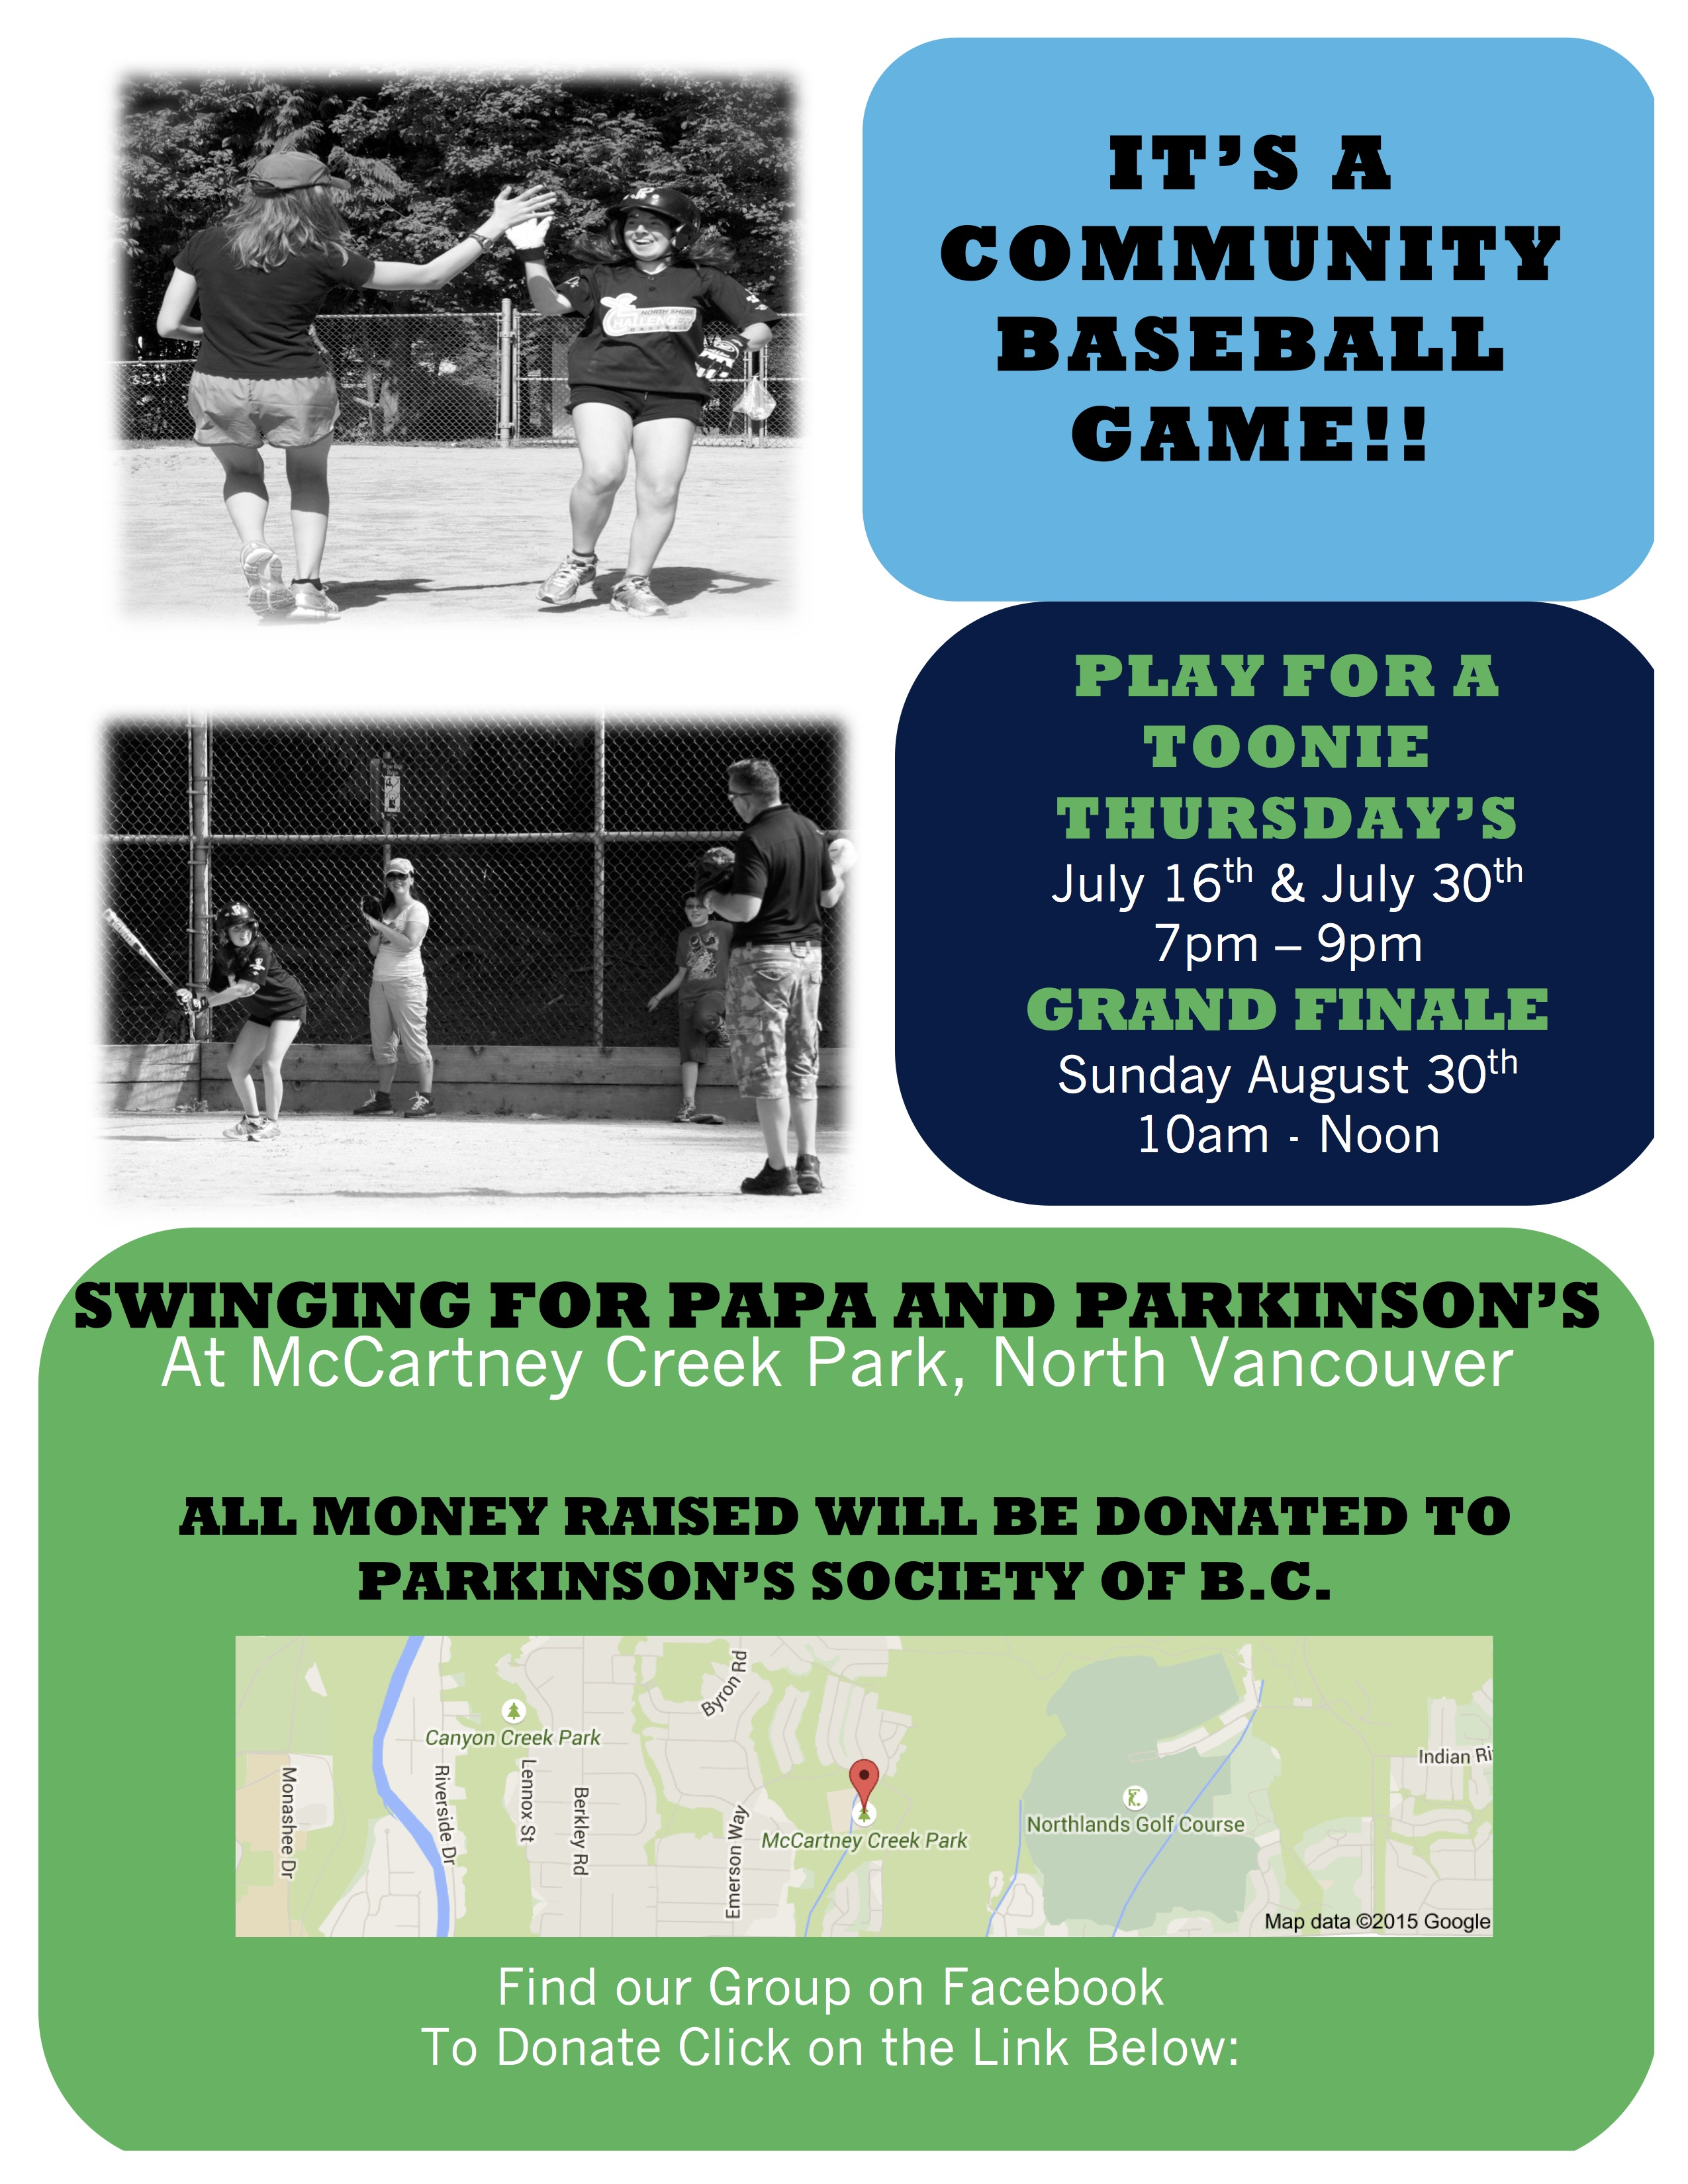 Community Baseball FINAL Game Sunday August 30th 10 am – noon at McCartney Creek Park